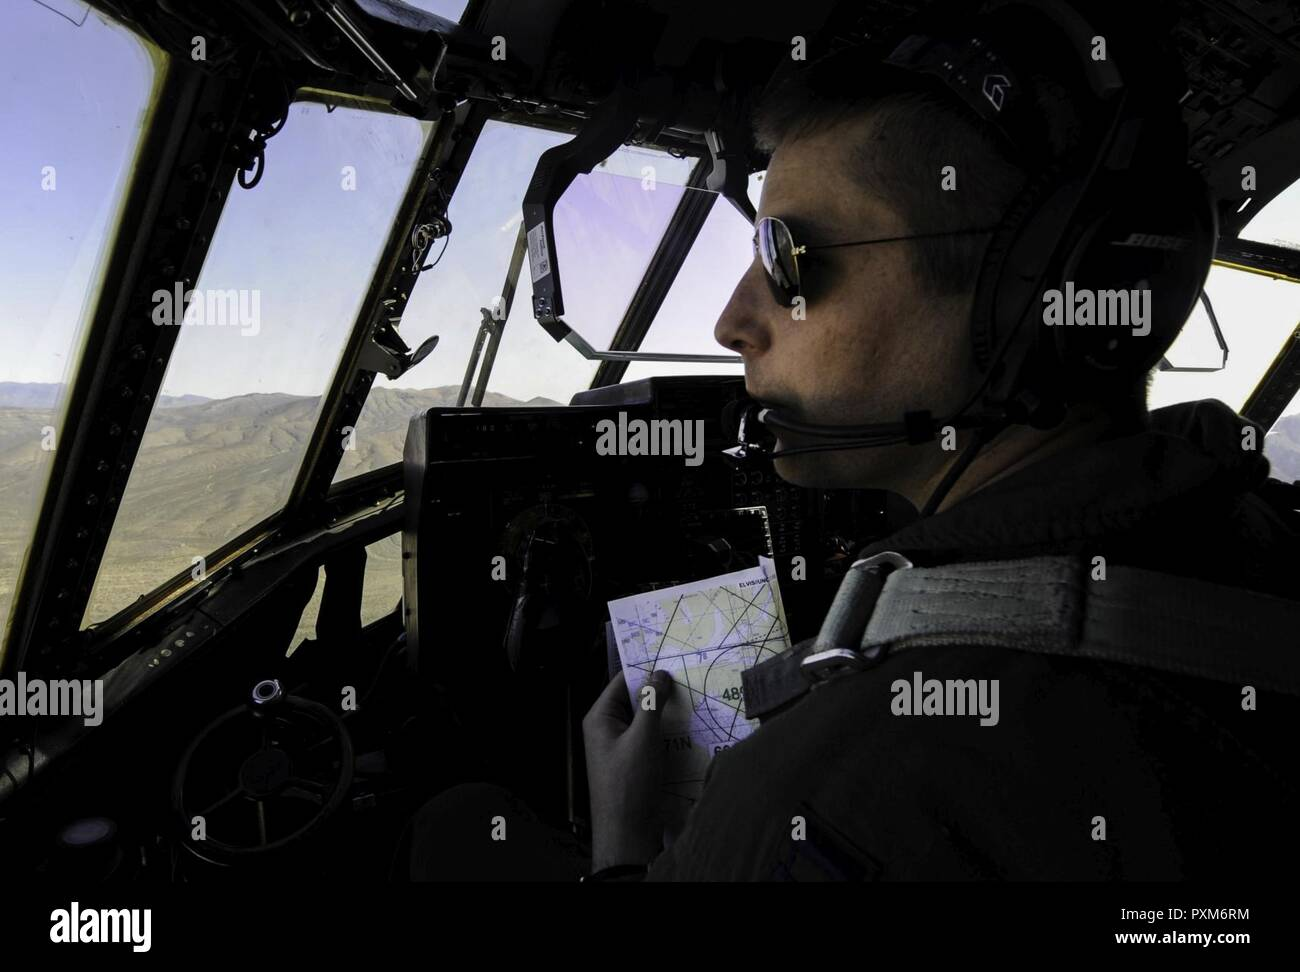 A pilot verifies coordinates on a map during a Weapons School Integration mission over the Nevada Test and Training Range, Nev., June 2, 2017. The students who take the Weapons School course demonstrate their ability to manage a battle and effectively integrate multiple weapons systems. - Stock Image